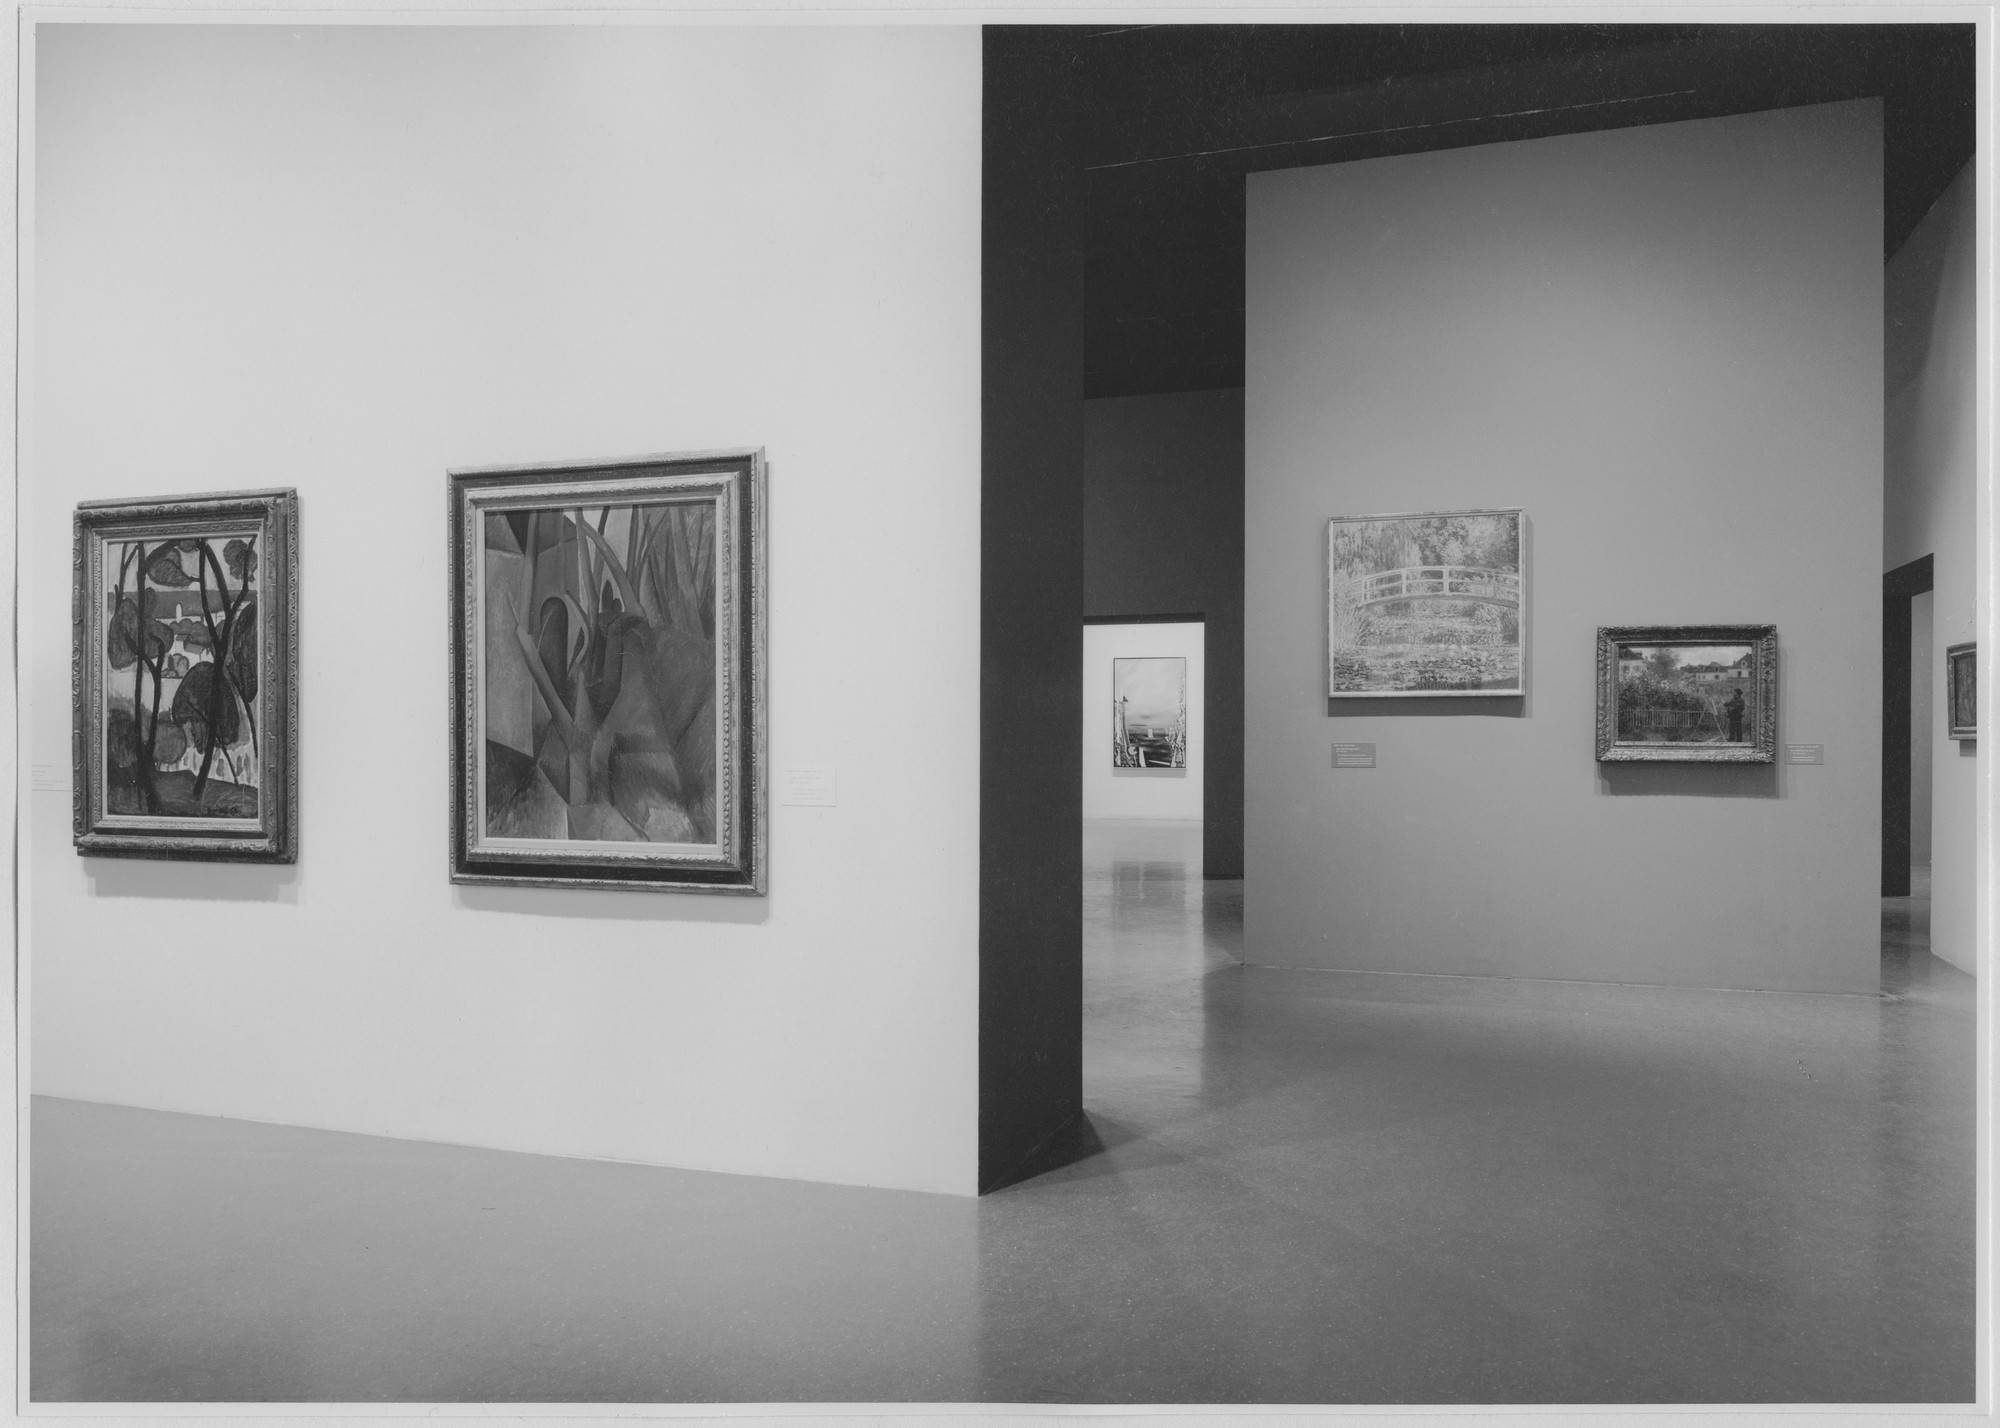 "Installation view of the exhibition, ""Modern Masters: Manet to Matisse."" August 5, 1975–September 28, 1975. Photographic Archive. The Museum of Modern Art Archives, New York. IN1105.1. Photograph by Katherine Keller."